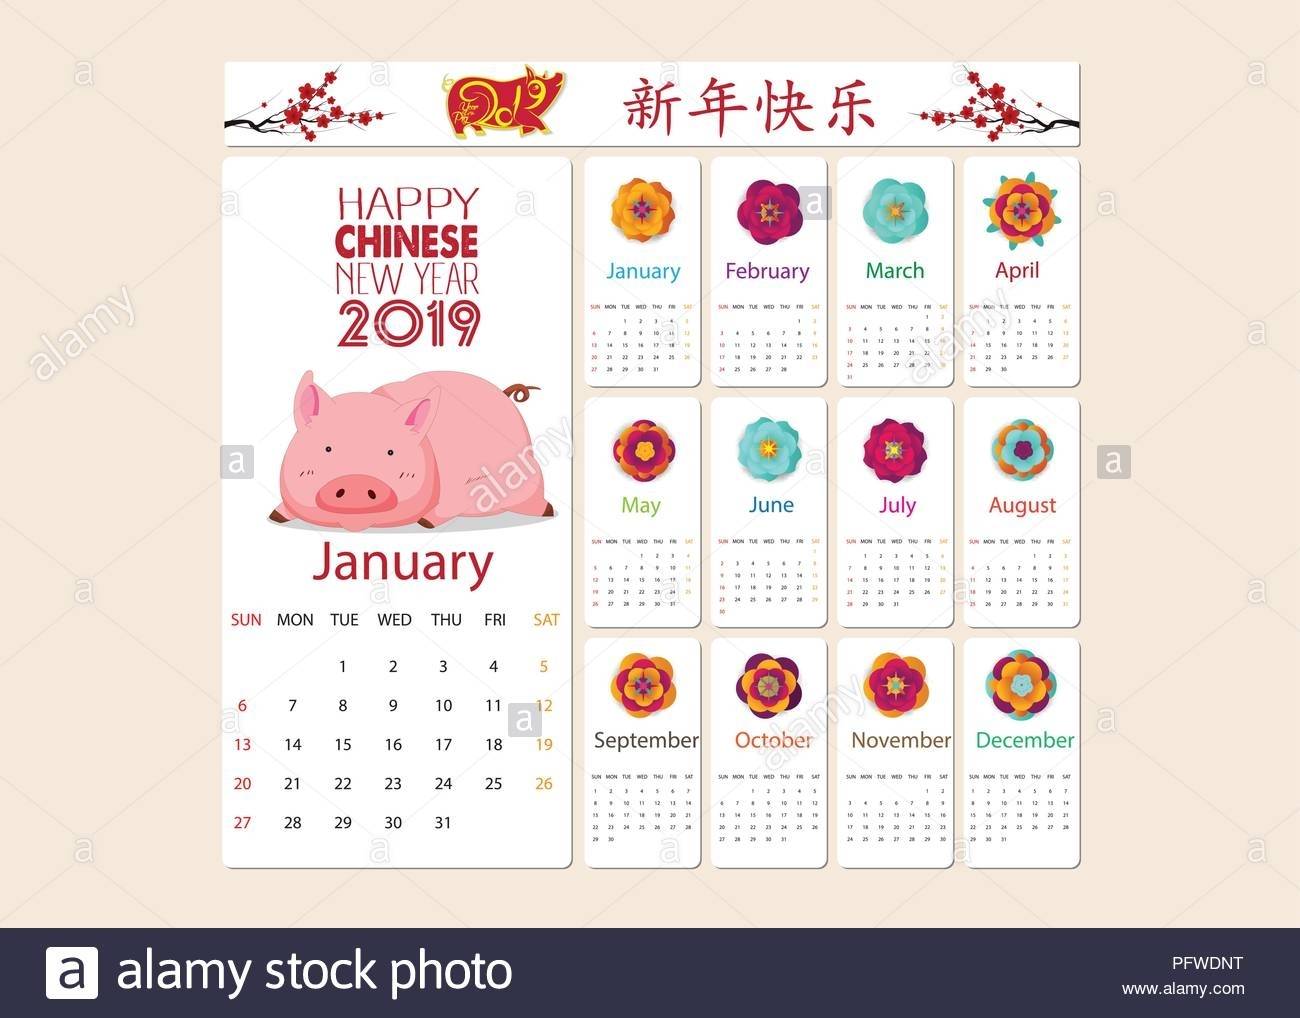 Monthly Creative Calendar 2019 With Cute Pig. Chinese